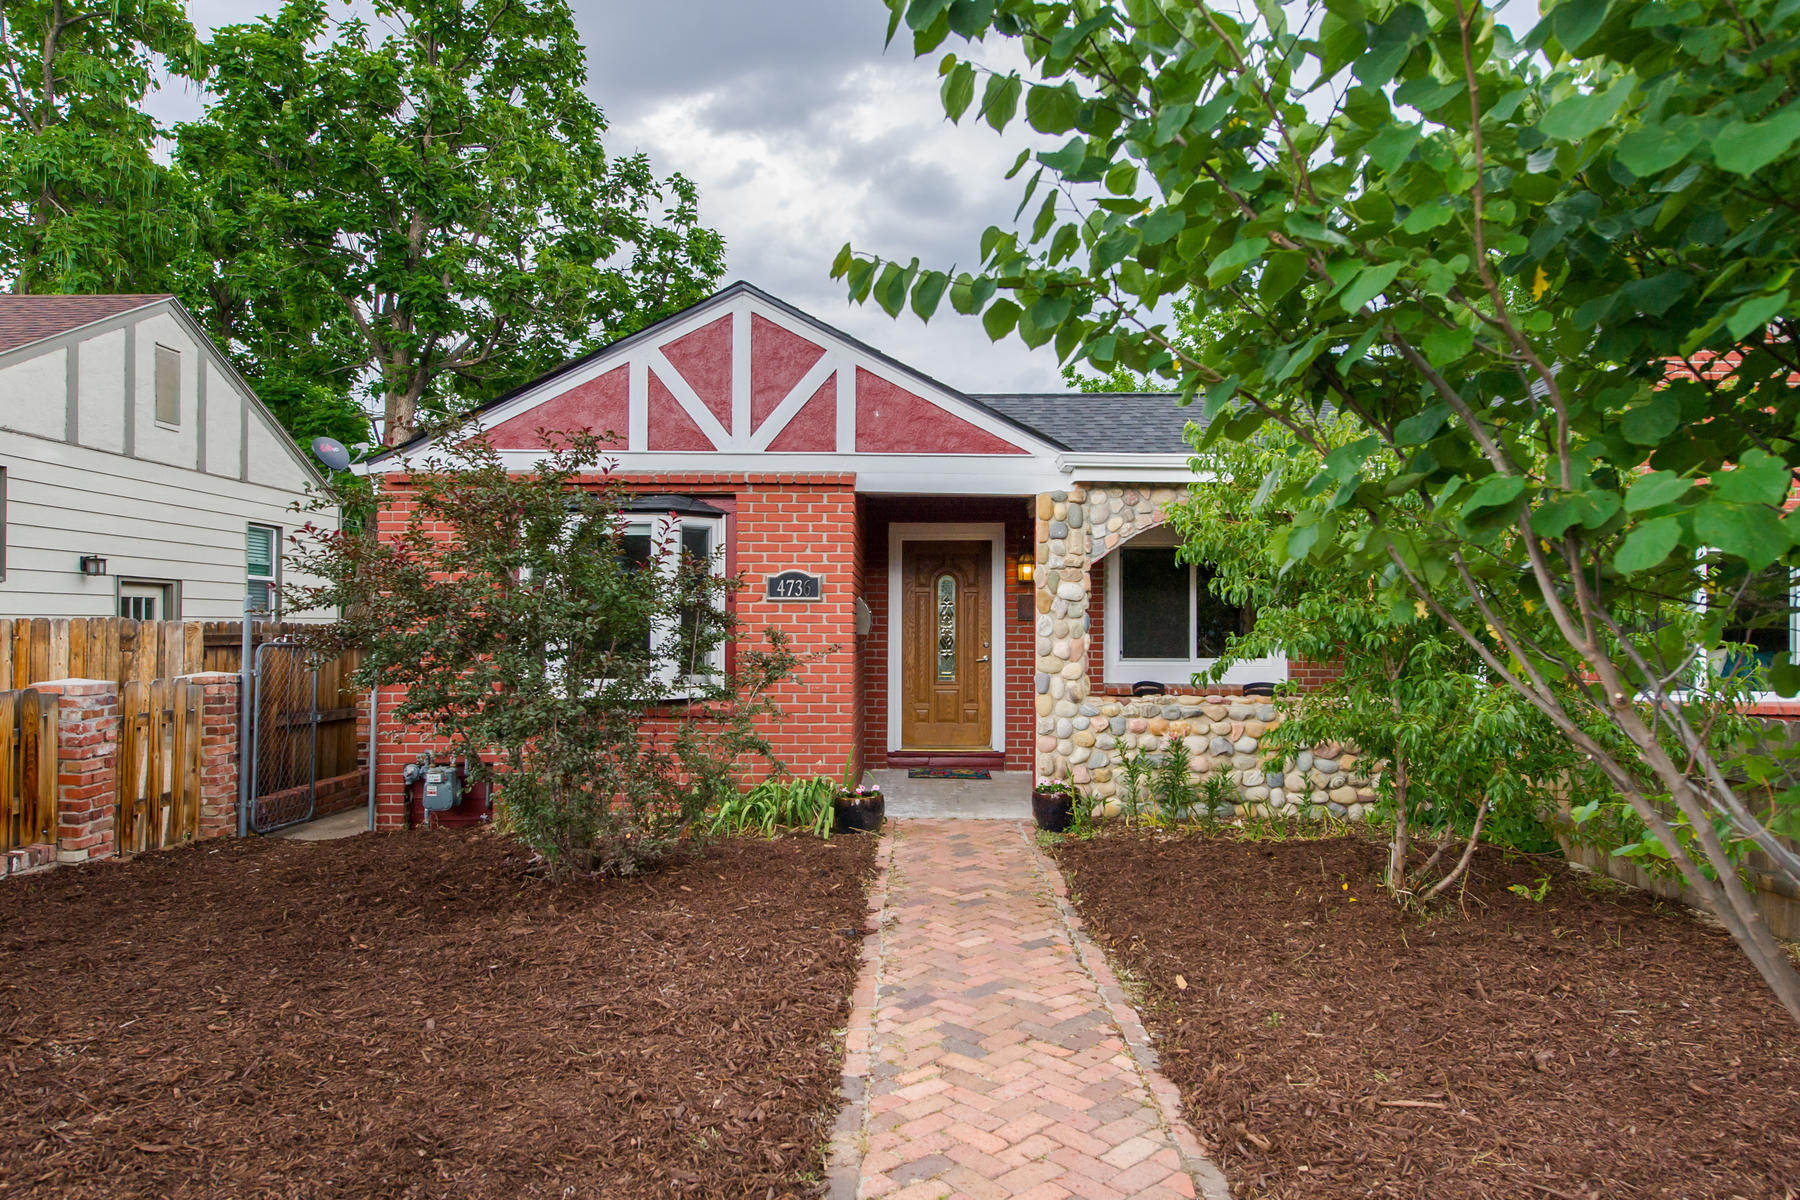 Single Family Home for Active at Live In A Remodeled, Brick Sunnyside Ranch 4736 Zuni Street Denver, Colorado 80211 United States